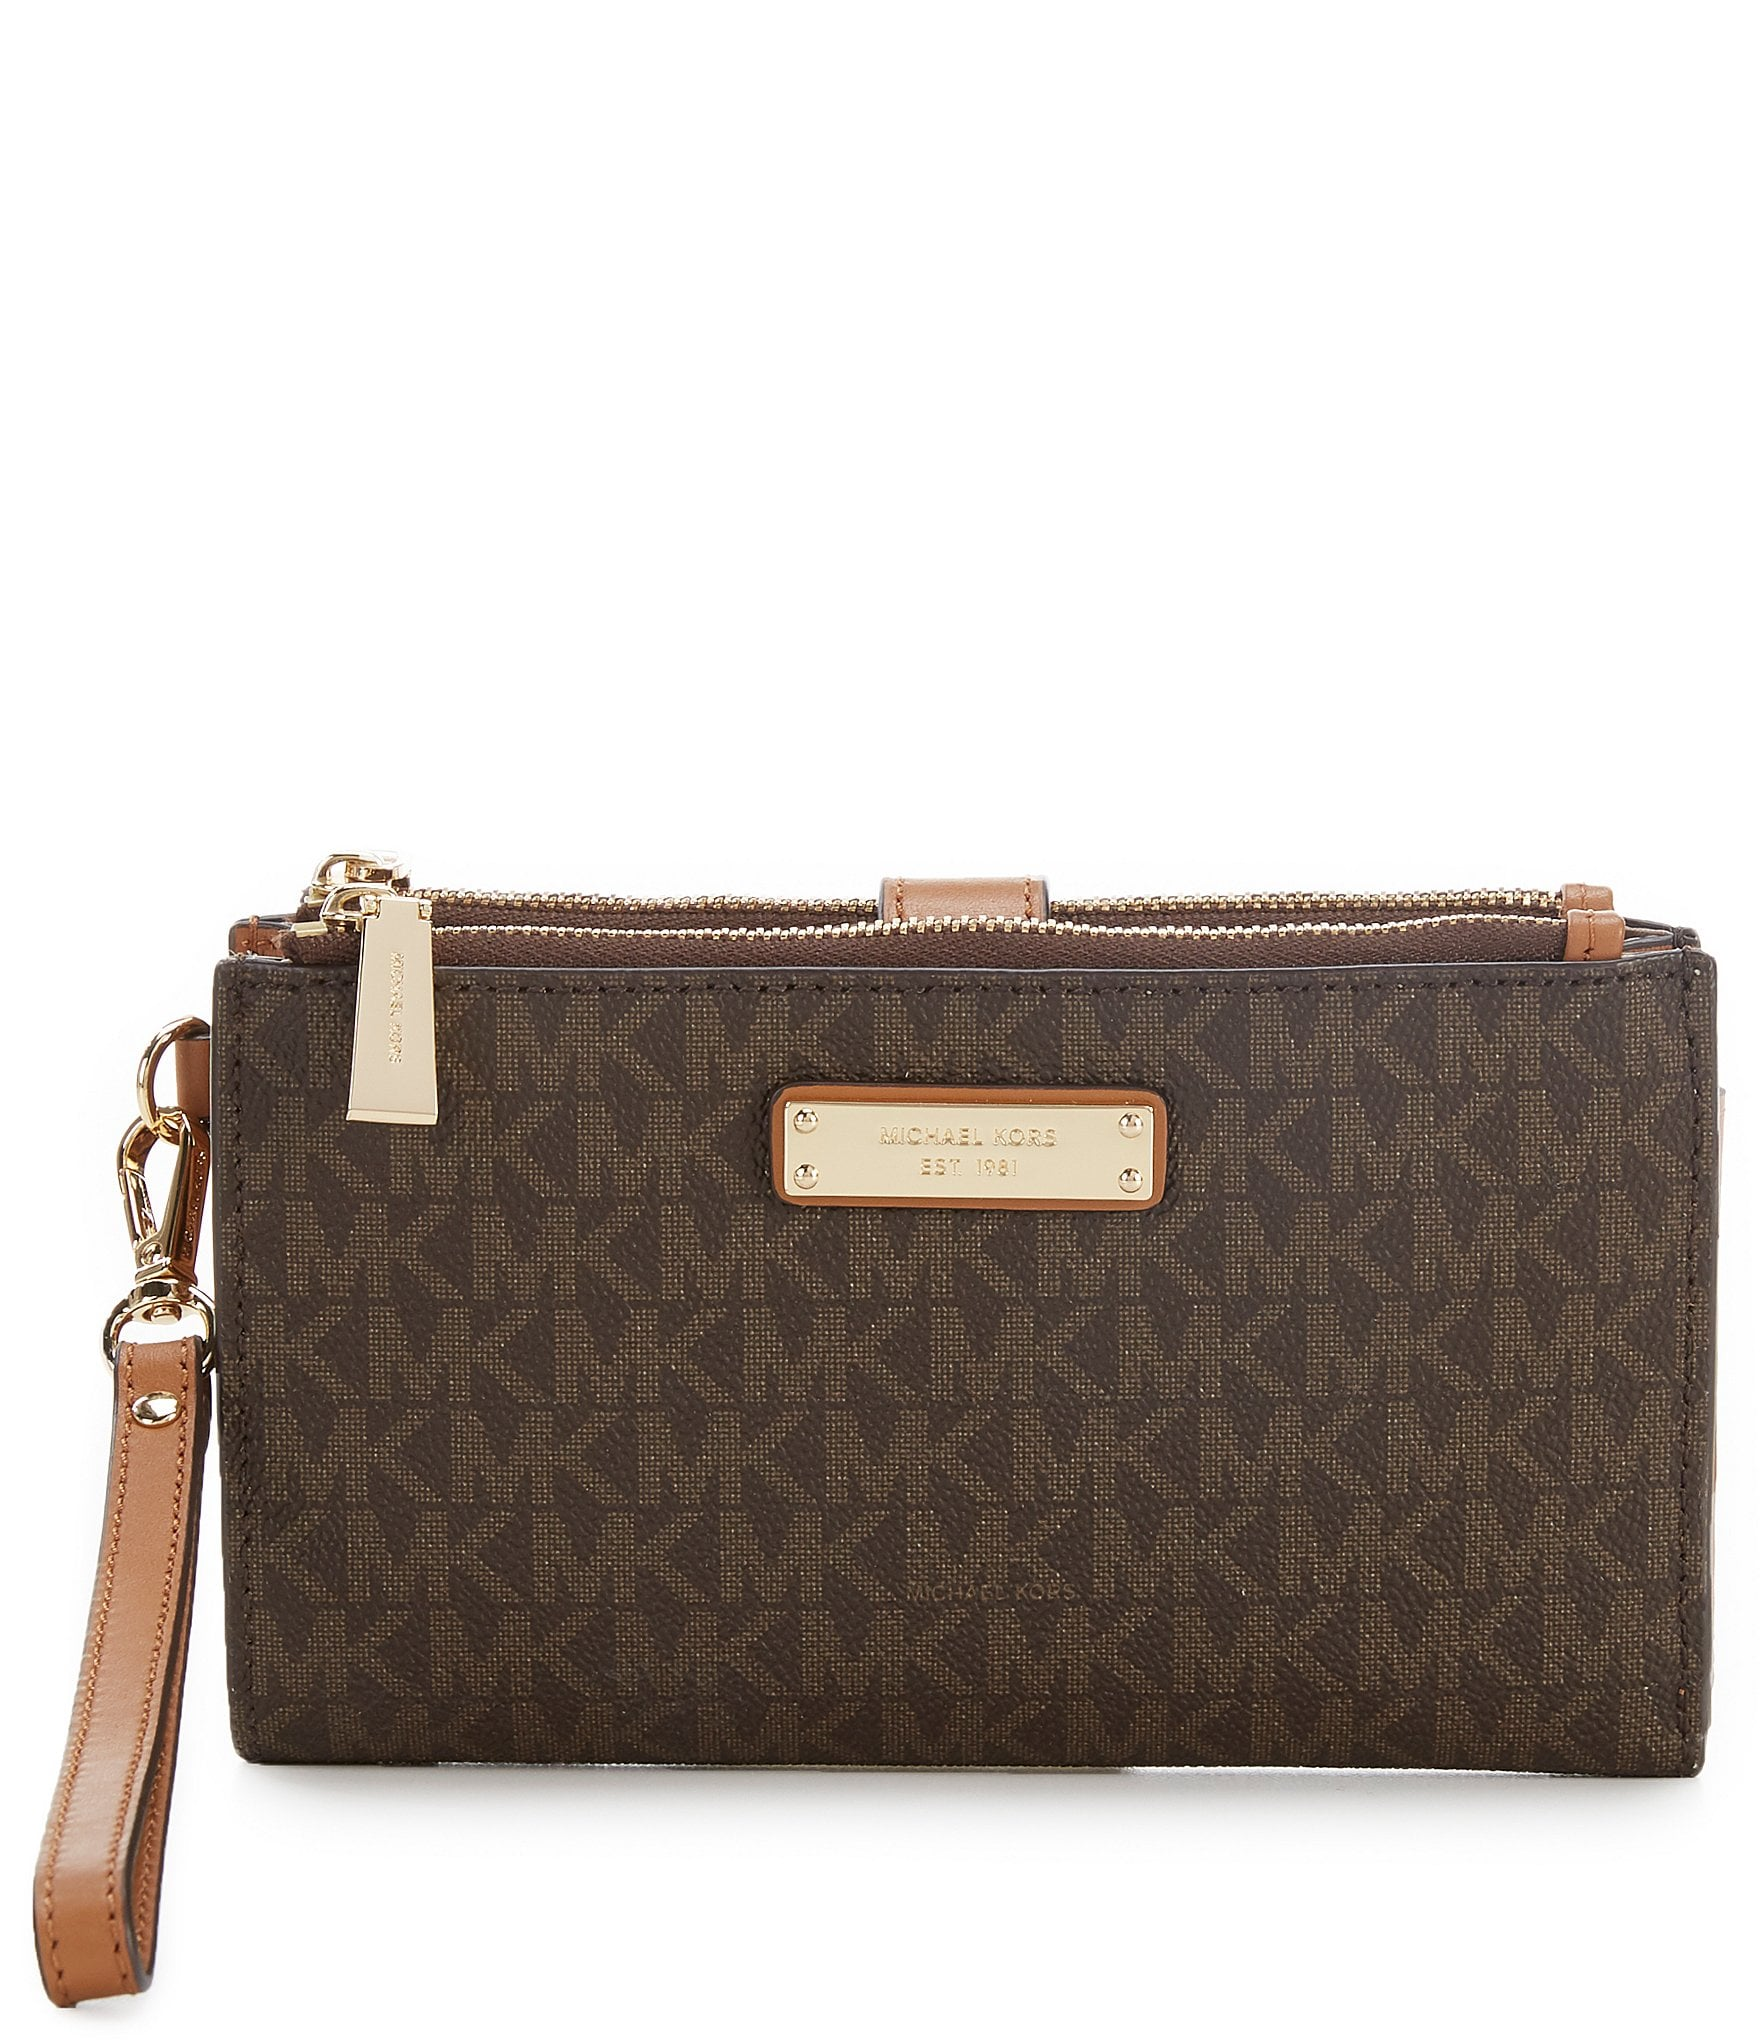 b534e6c53e3f62 Buy michael kors large wristlet sale > OFF64% Discounted